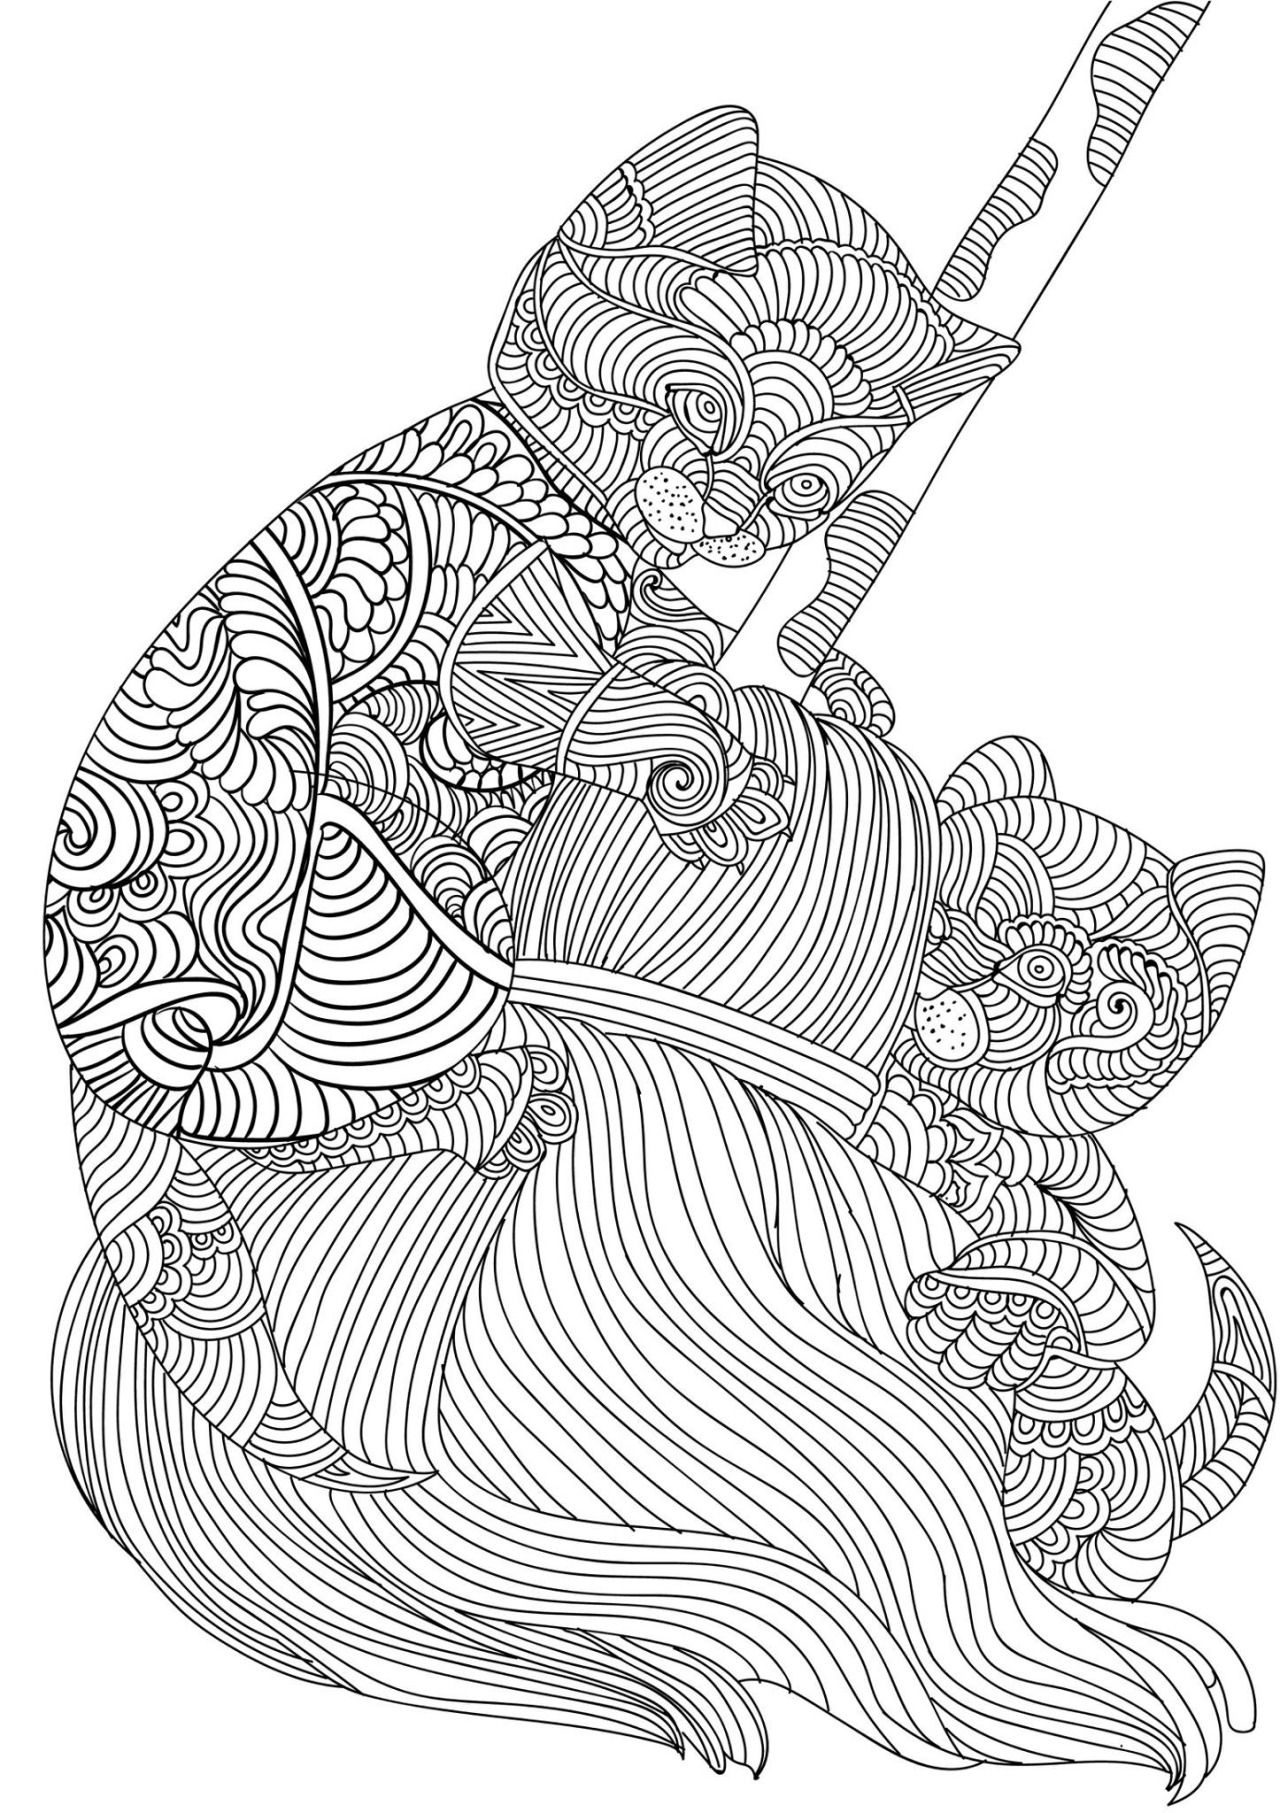 Coloring pages for adults cute - Look At These Cute Cats An Image Straight Out Of Our Upcoming Adult Coloring Book